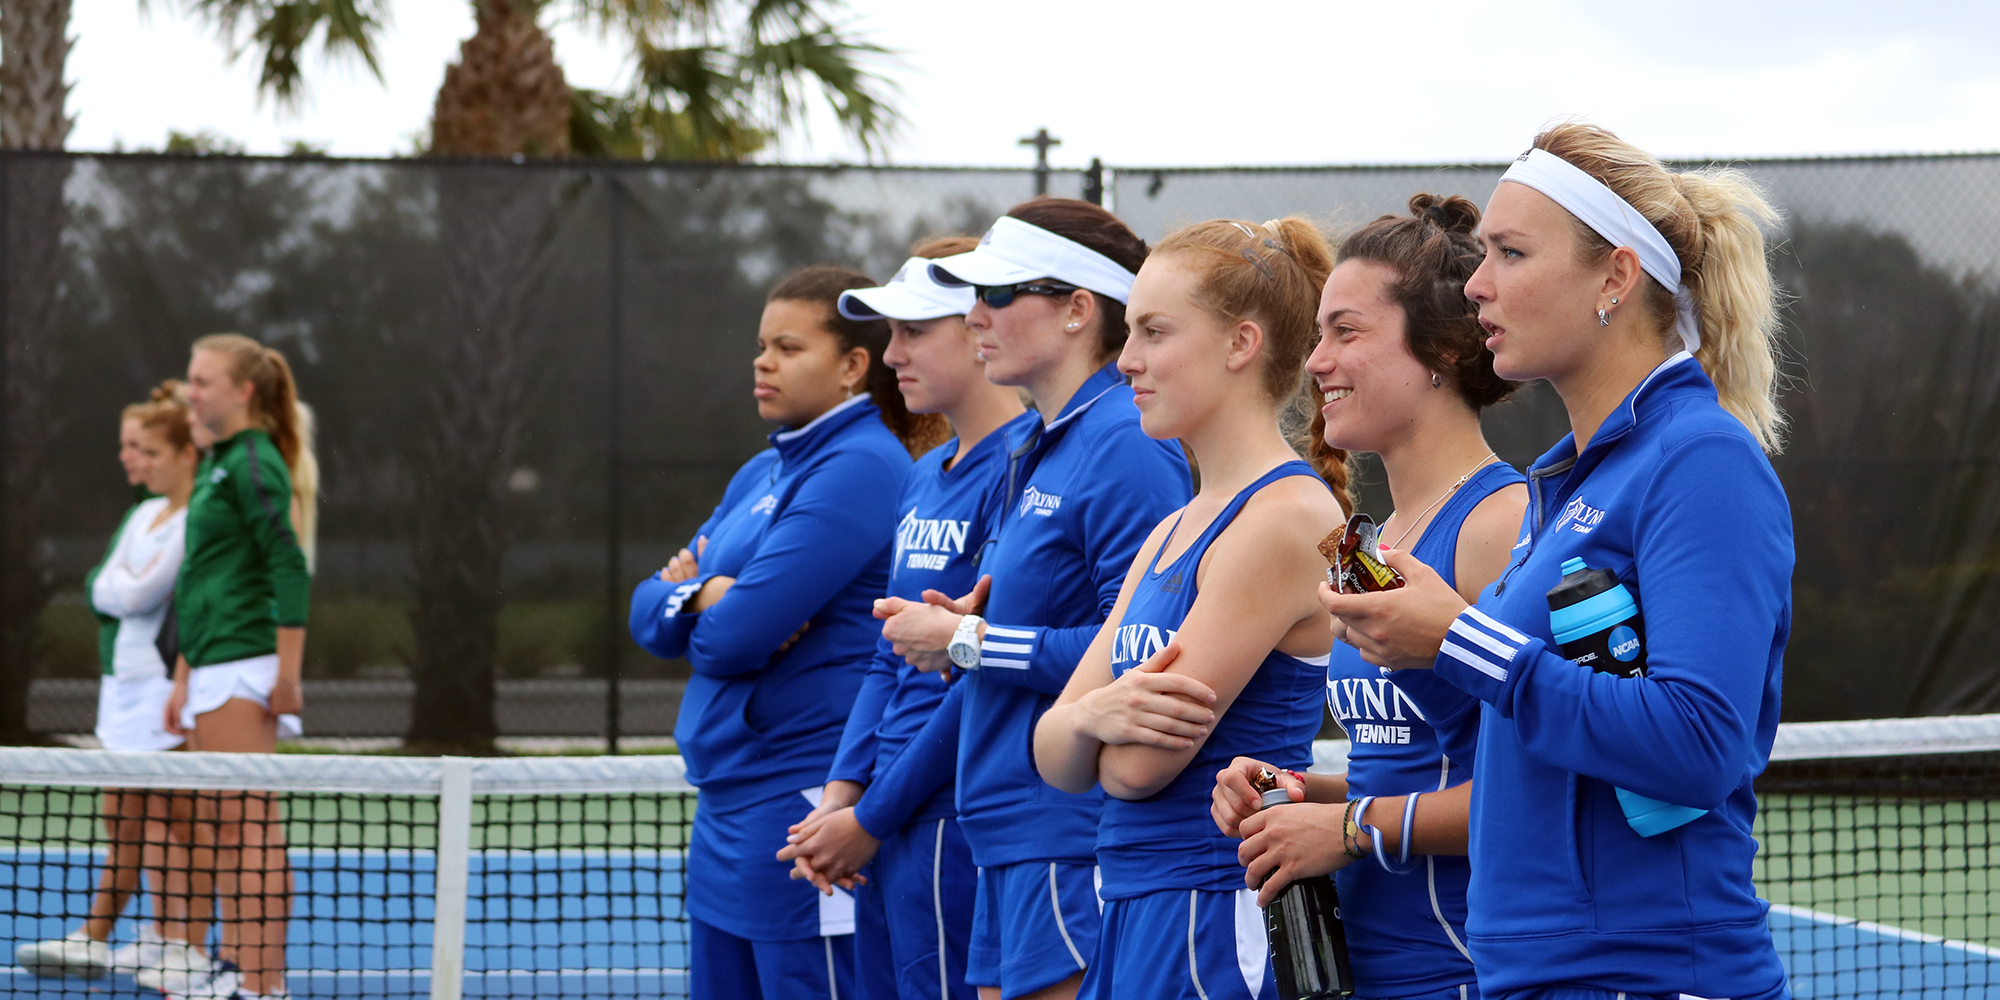 Women's Tennis Comes in at No. 4 in First-Ever Computerized Rankings